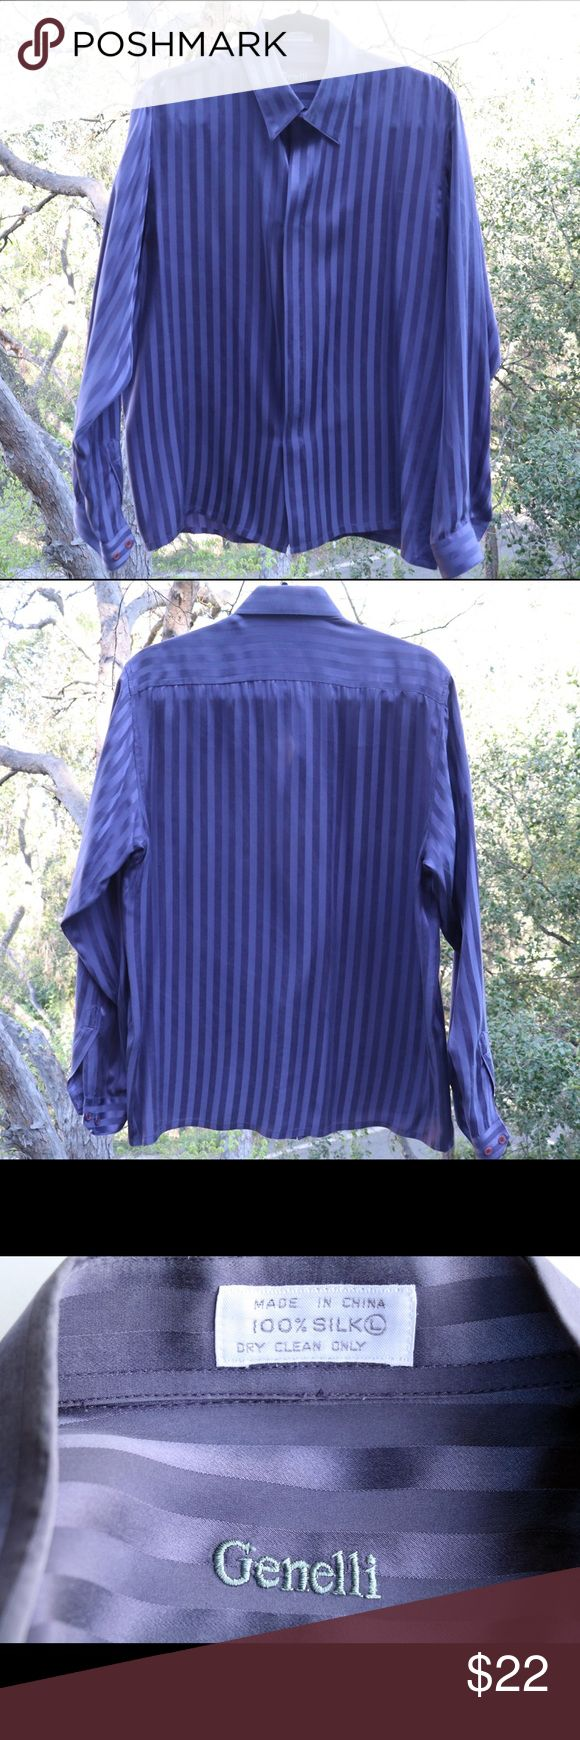 Genelli men's silk shirt This purple-colored 100% silk shirt by Genelli is light weight and elegant. Disclaimer: something chewed the base of the sleeve as pictured, which accounts for the bargain price Genelli Shirts Dress Shirts